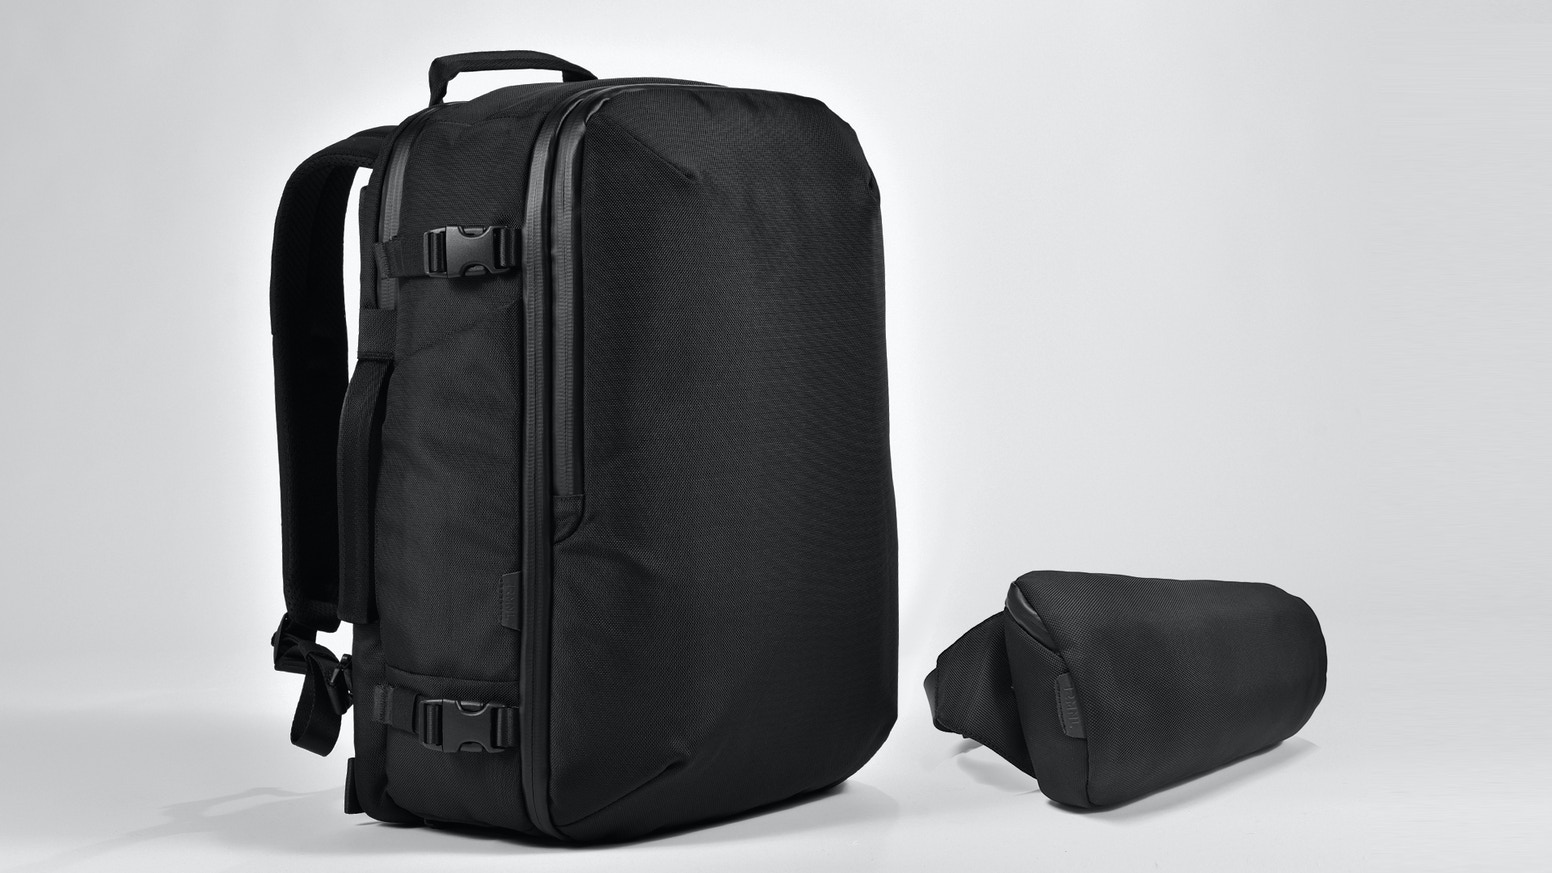 Sleek, functional & exceptionally durable. Pack all your essentials in the carry-on travel backpack designed to elevate your carry experience.